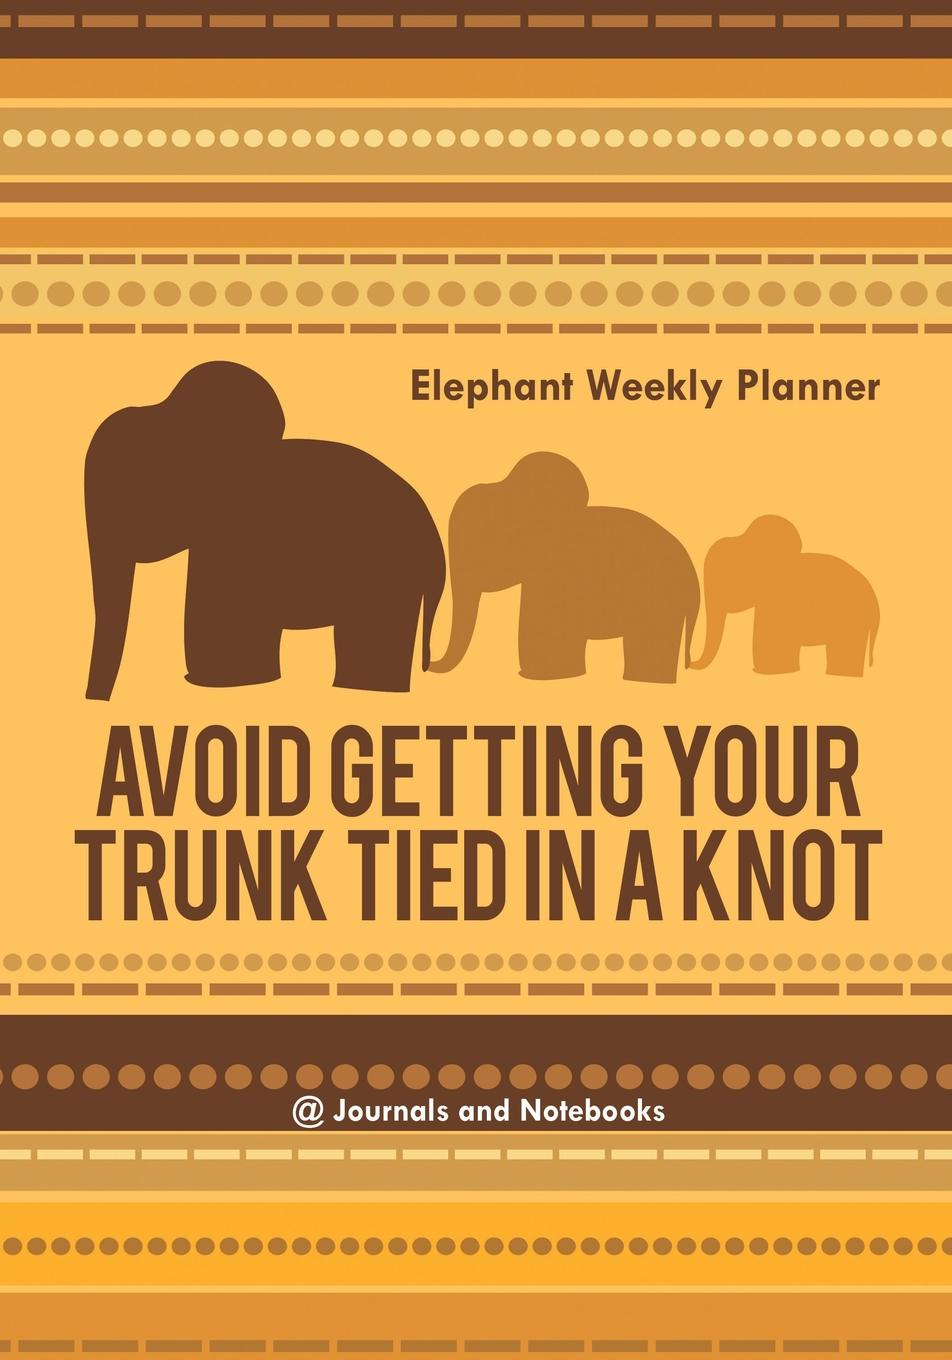 @Journals Notebooks Avoid Getting Your Trunk Tied in a Knot. Elephant Weekly Planner week planner wall decal